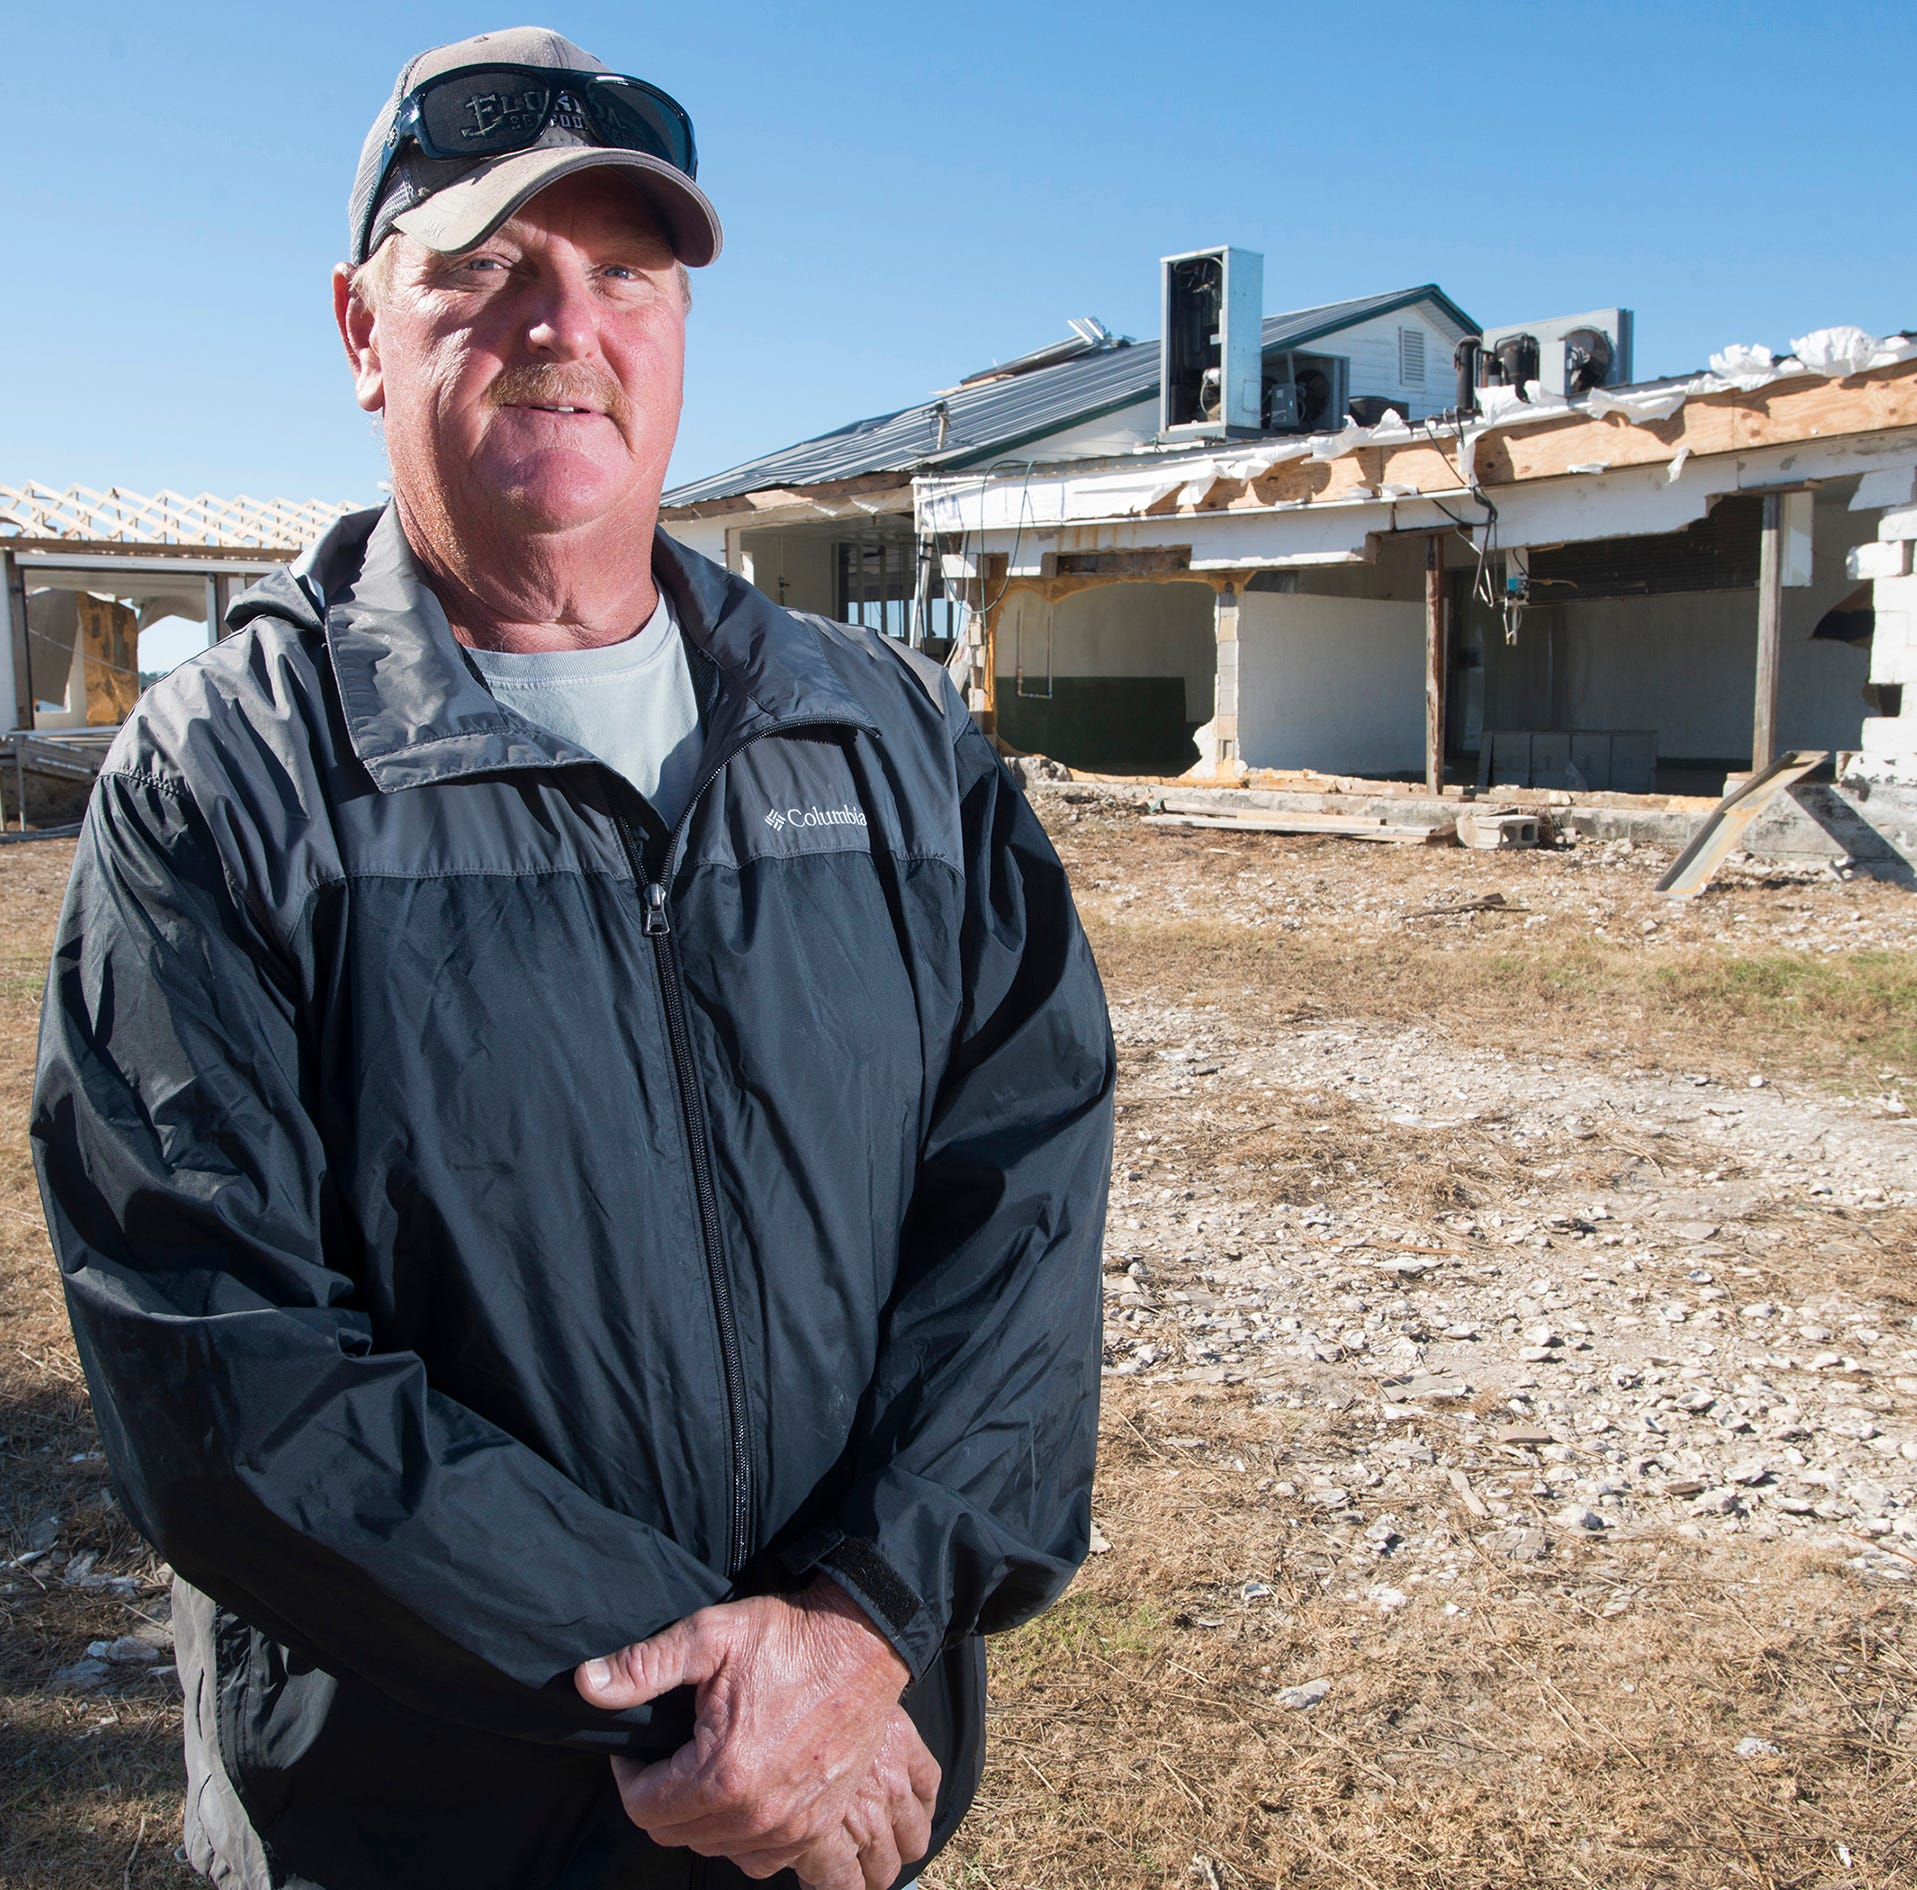 Tommy Ward, a longtime oysterman from Apalachicola, hopes Hurricane Michael will rejuvenate the struggling fishing industry he has been part of for generations.